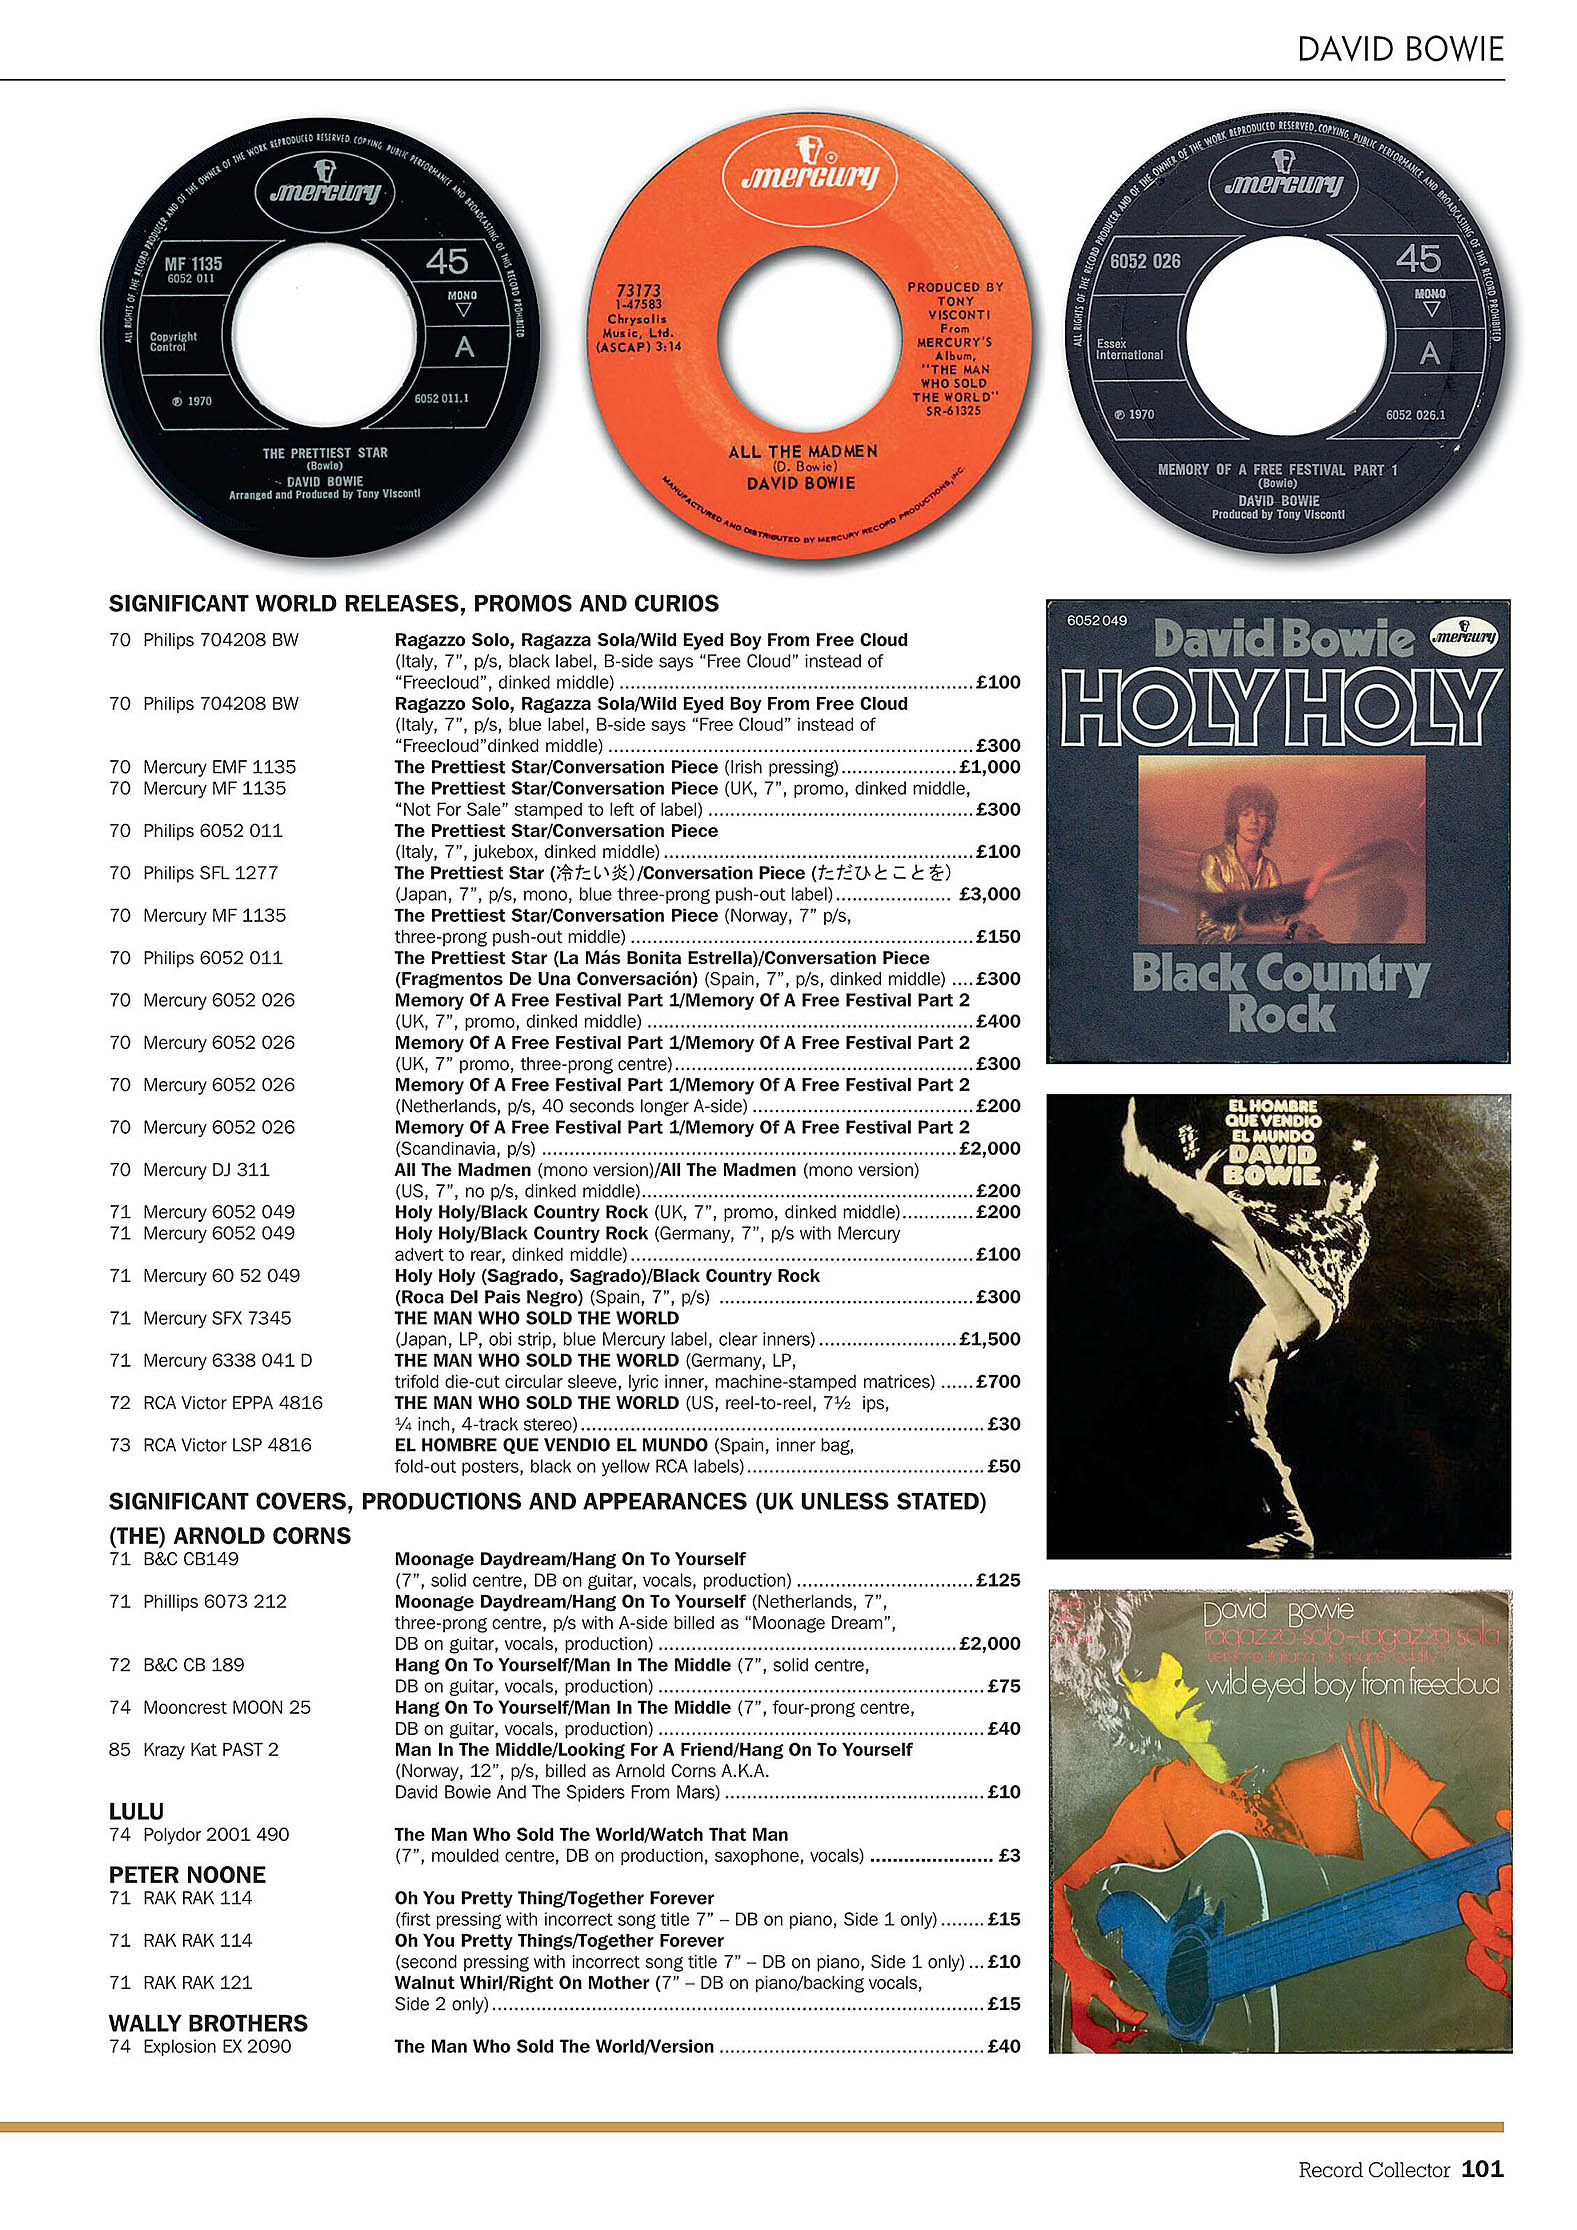 Record Collector 2021-05 DBowie 13.jpg